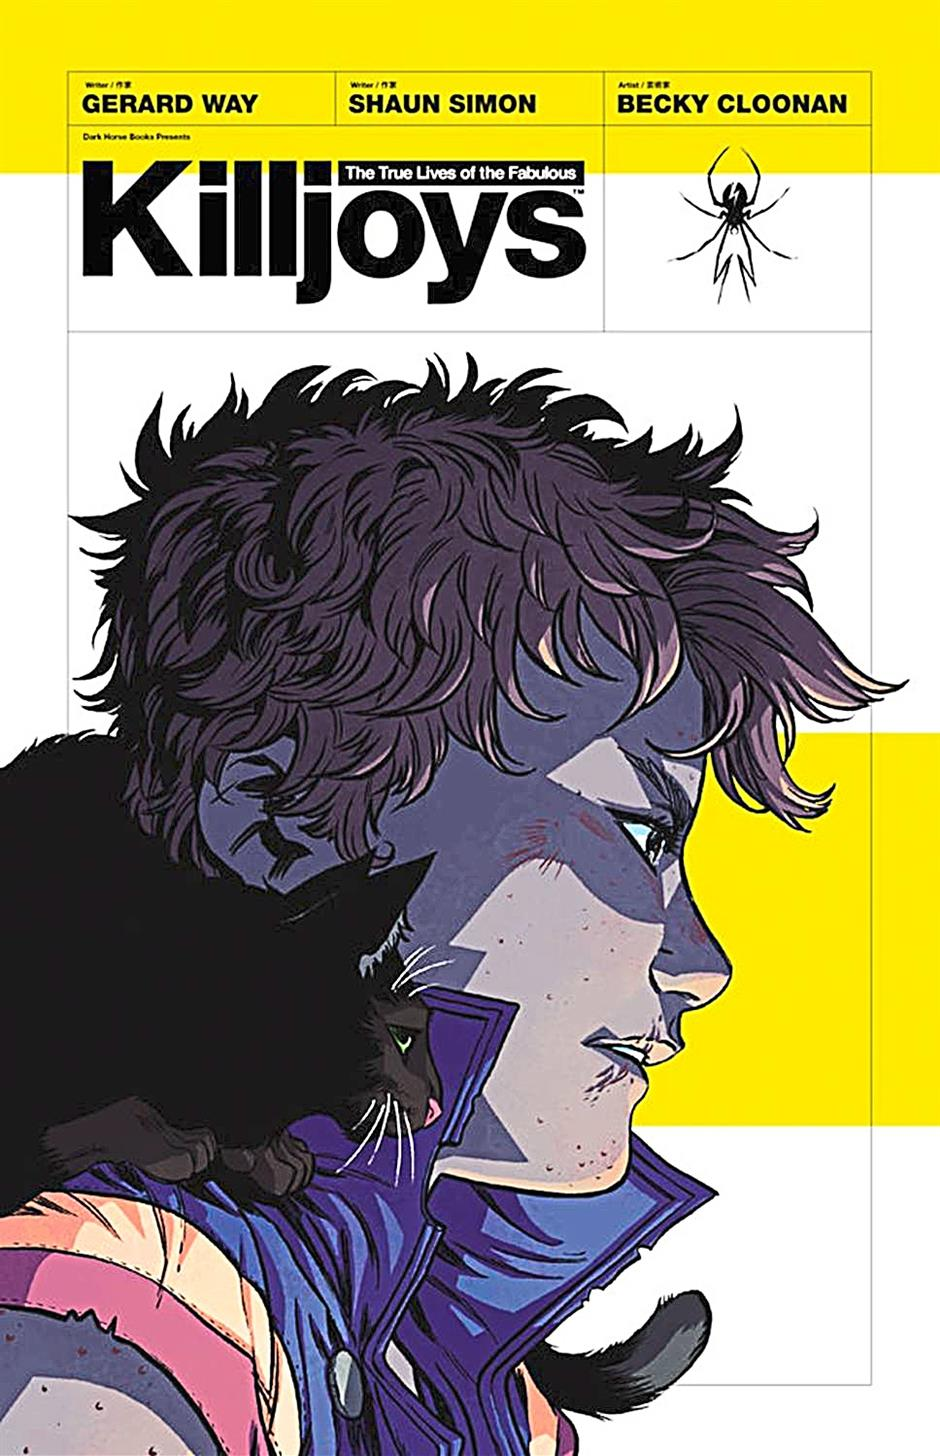 Fabulous Killjoys' a tough tale to connect with | The Star